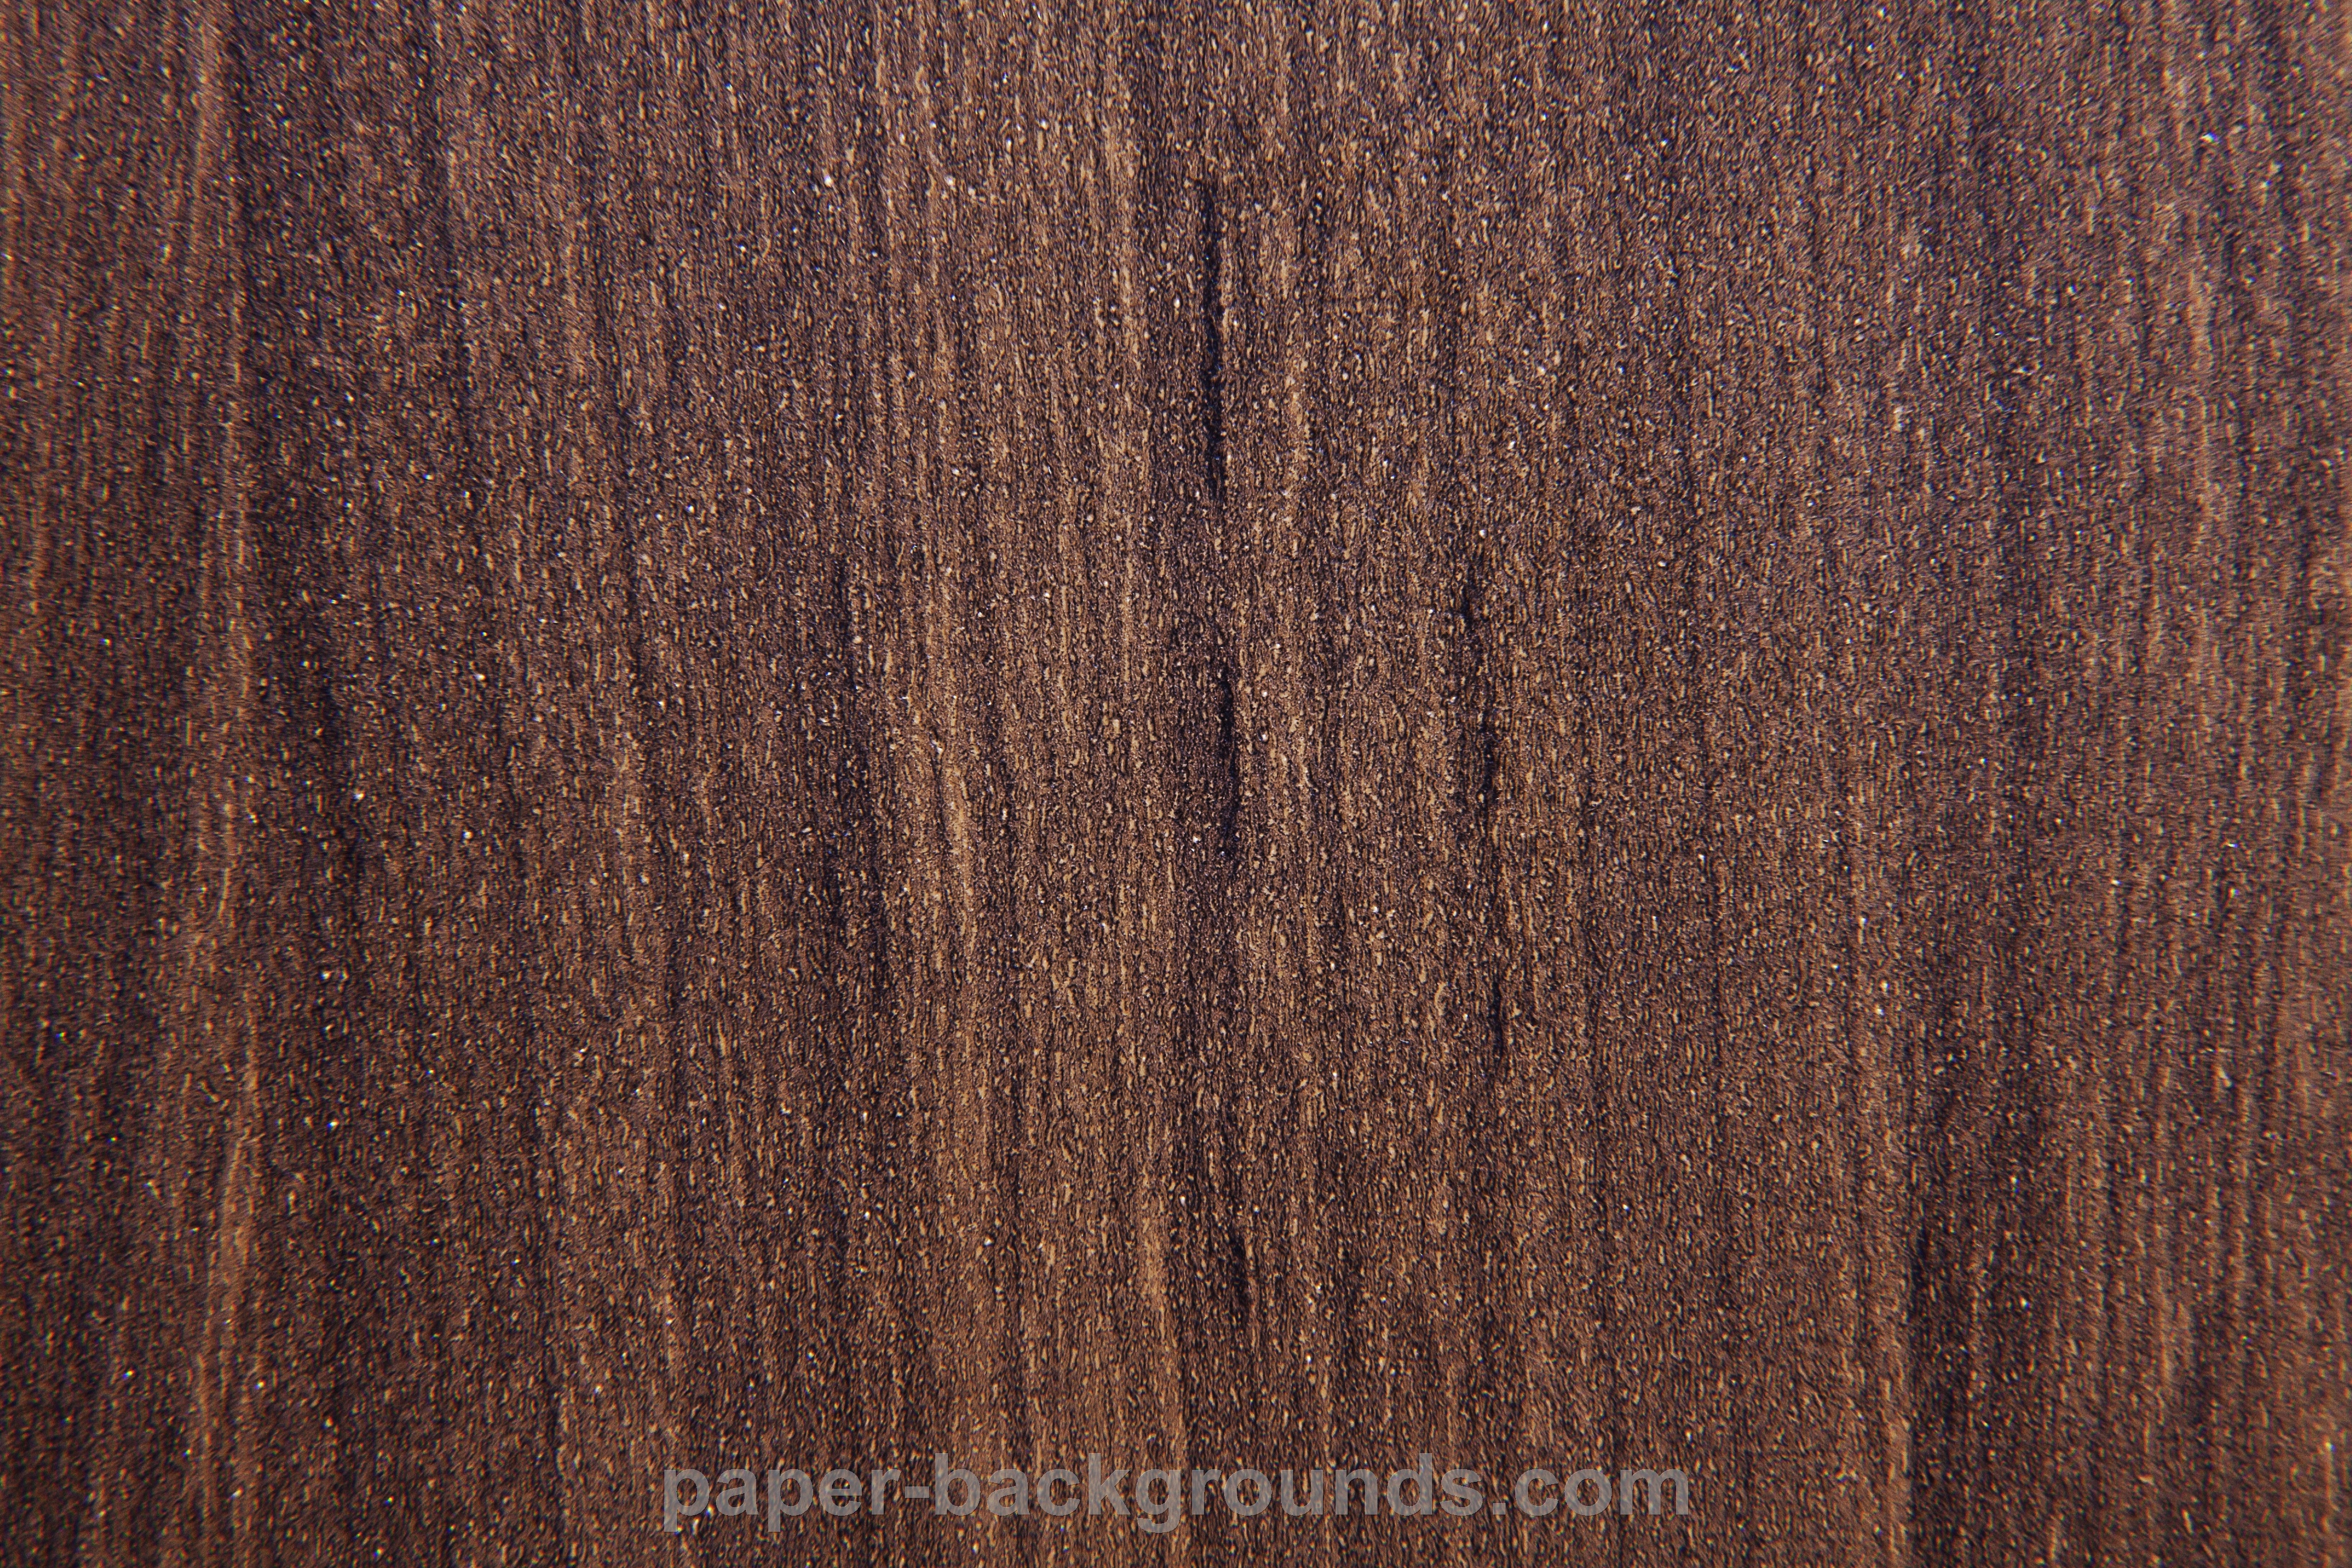 Paper Backgrounds Dark Brown Wood Furniture Texture